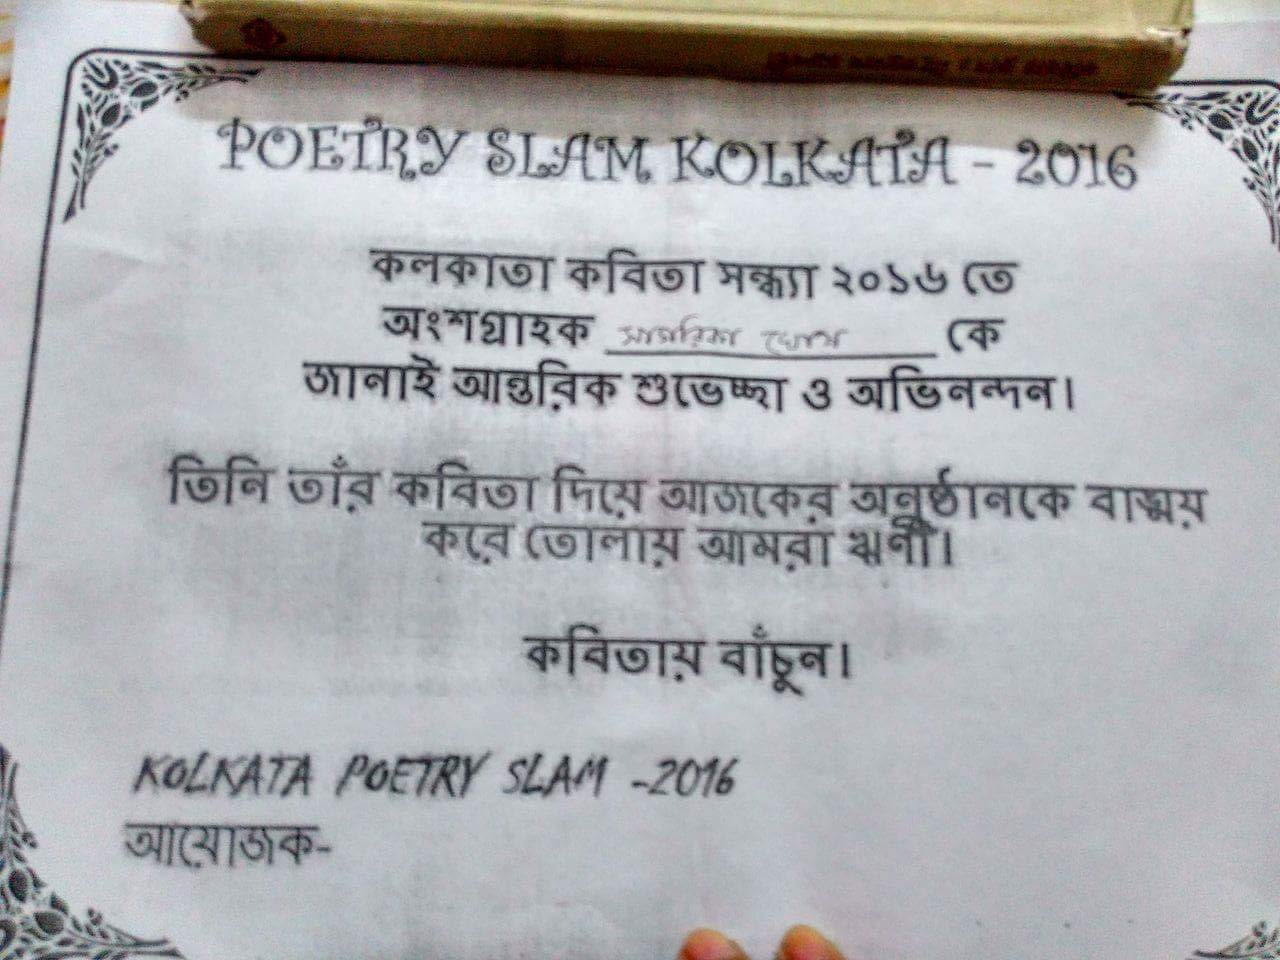 First Memorial Award to the winner from Kolkata Bengali Poetry Slam